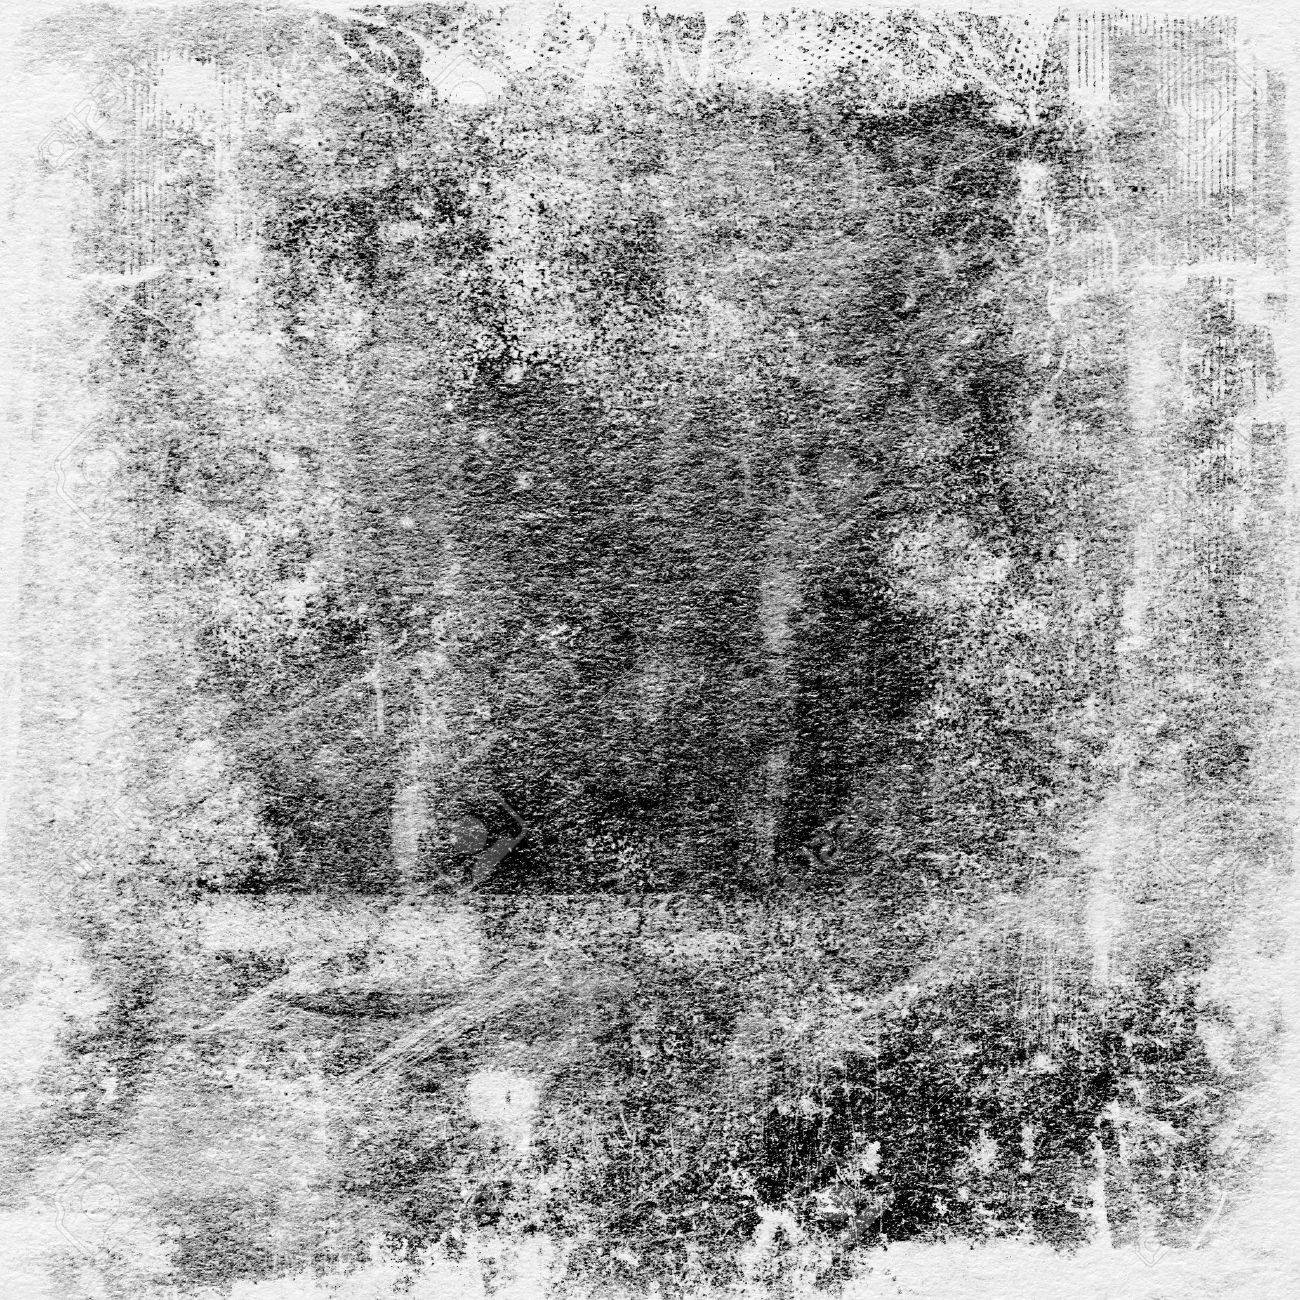 grunge paper texture, border and background - 34788703